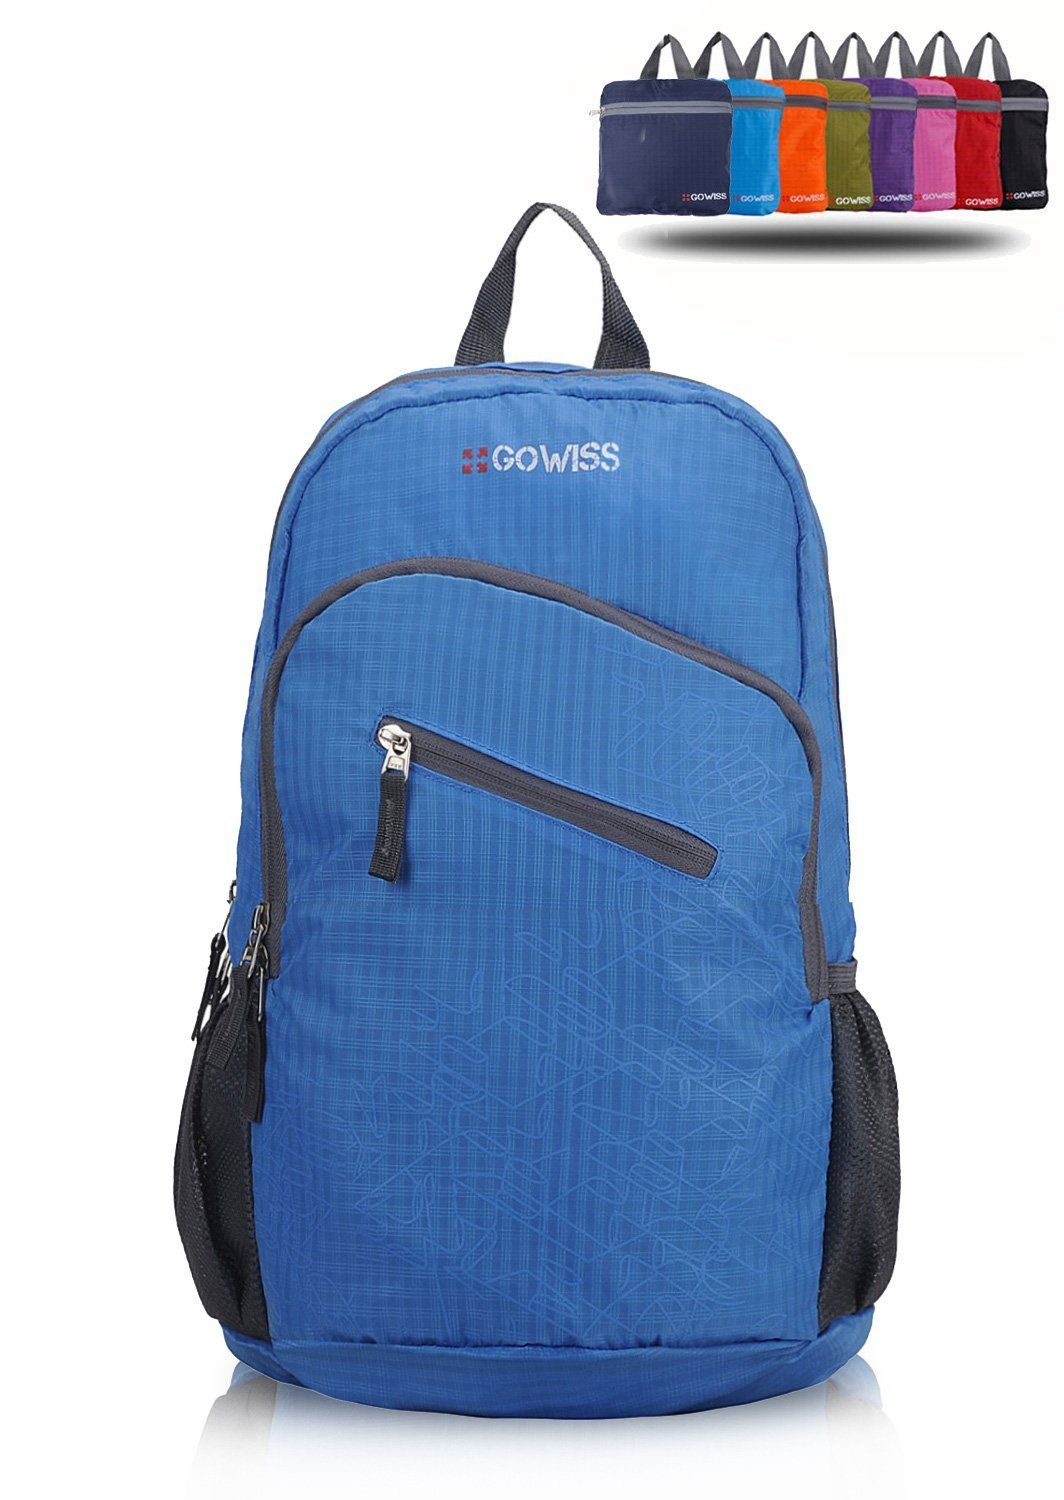 Gowiss Backpack - Rated 20L   33L- Most Durable Packable Convenient  Lightweight Travel Backpack Daypack - Waterproof,Ultralight and Handy --  Remarkable ... ab0230bb38